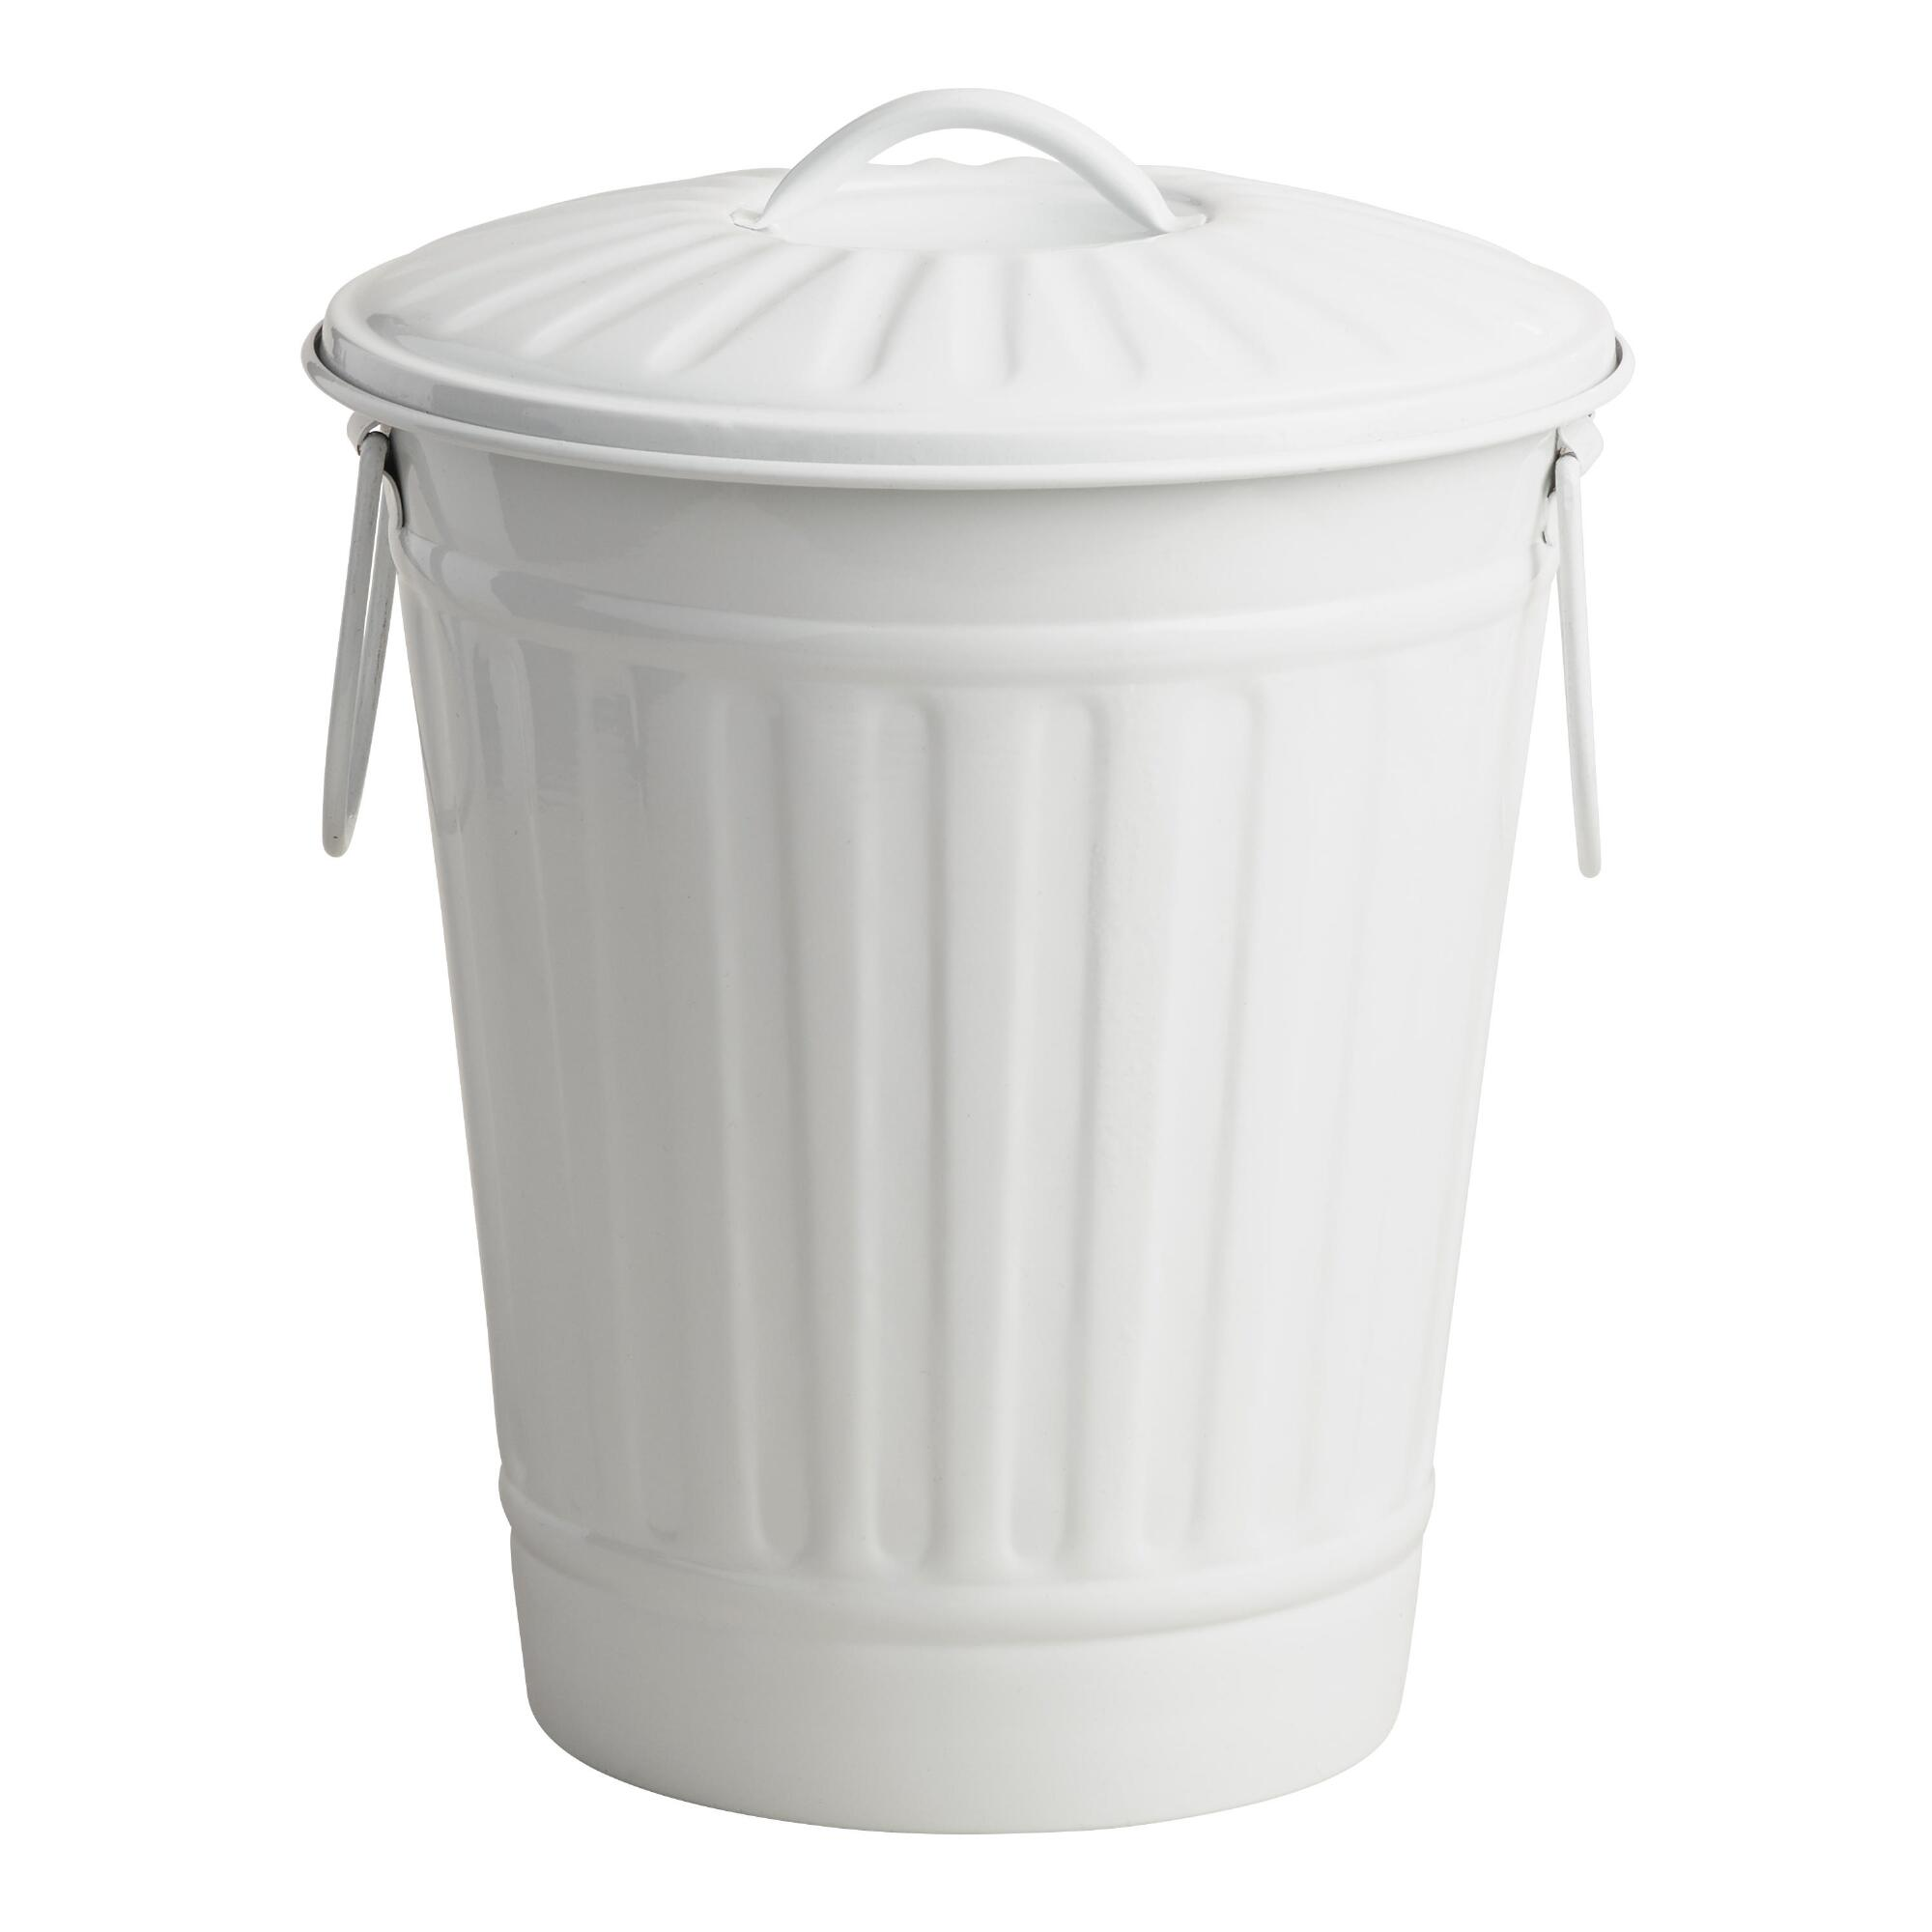 Aluminium Garbage Cans : Large matte white retro metal trash can world market